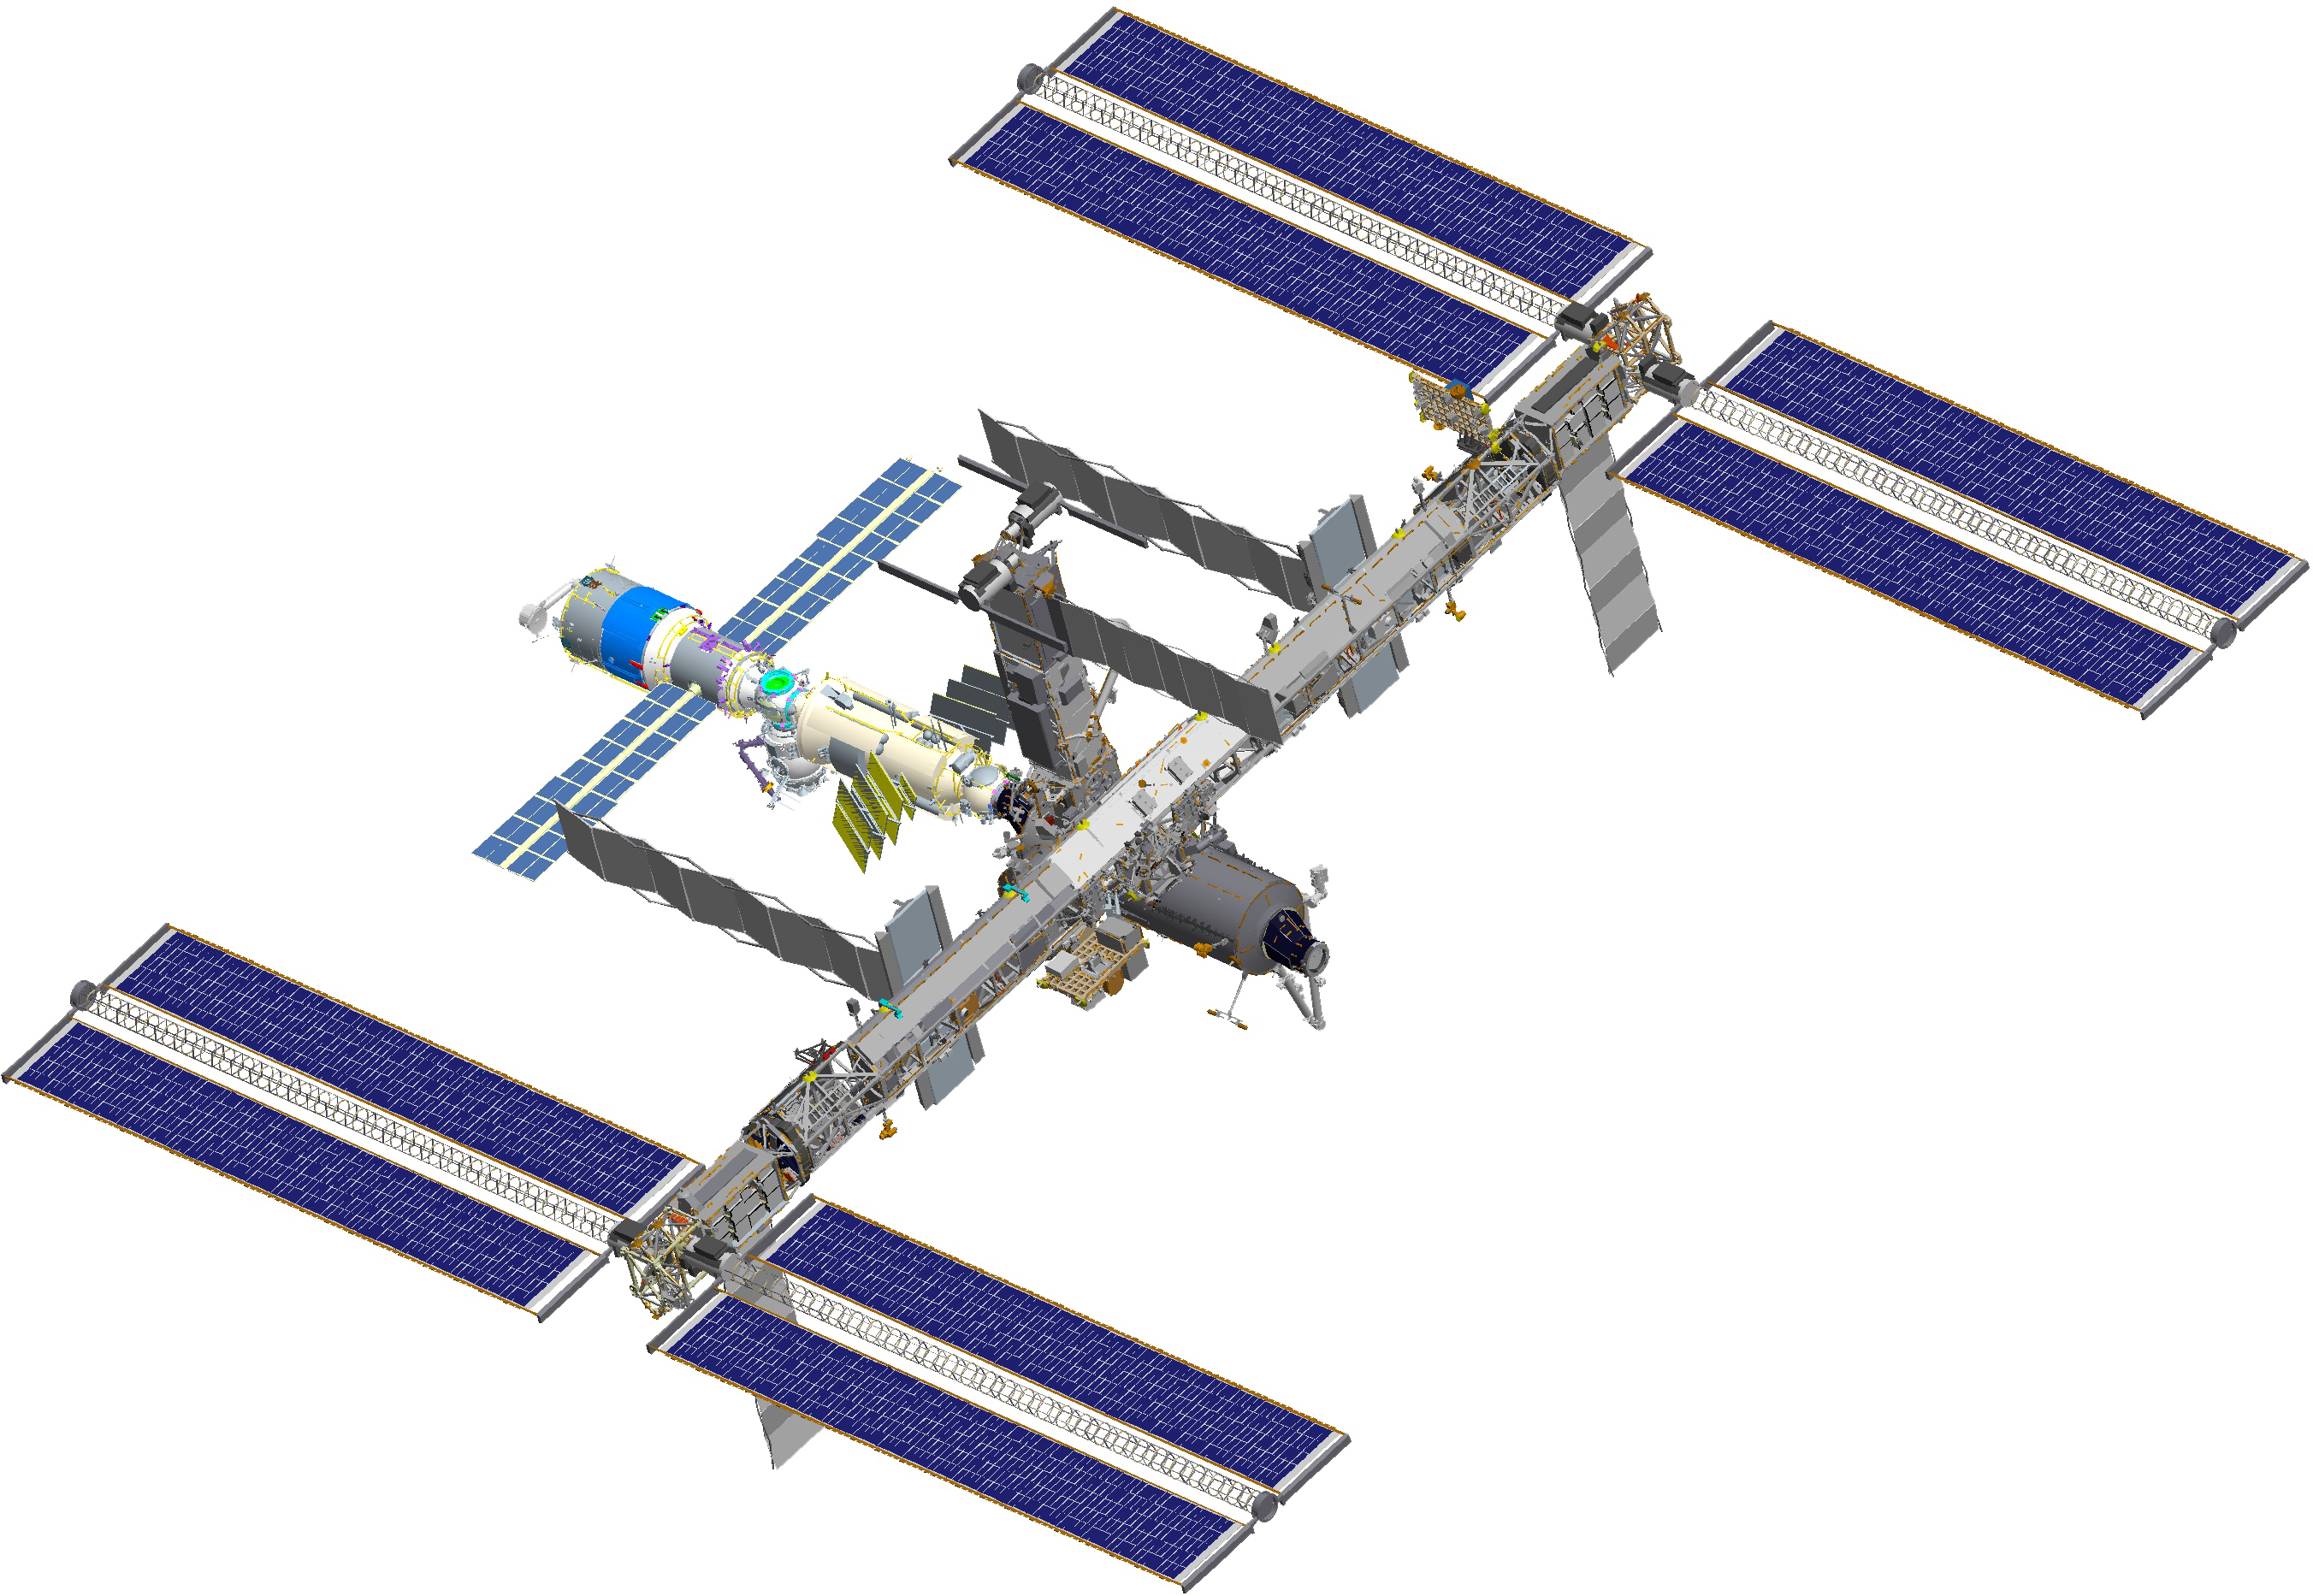 Spacecraft Png image #40890